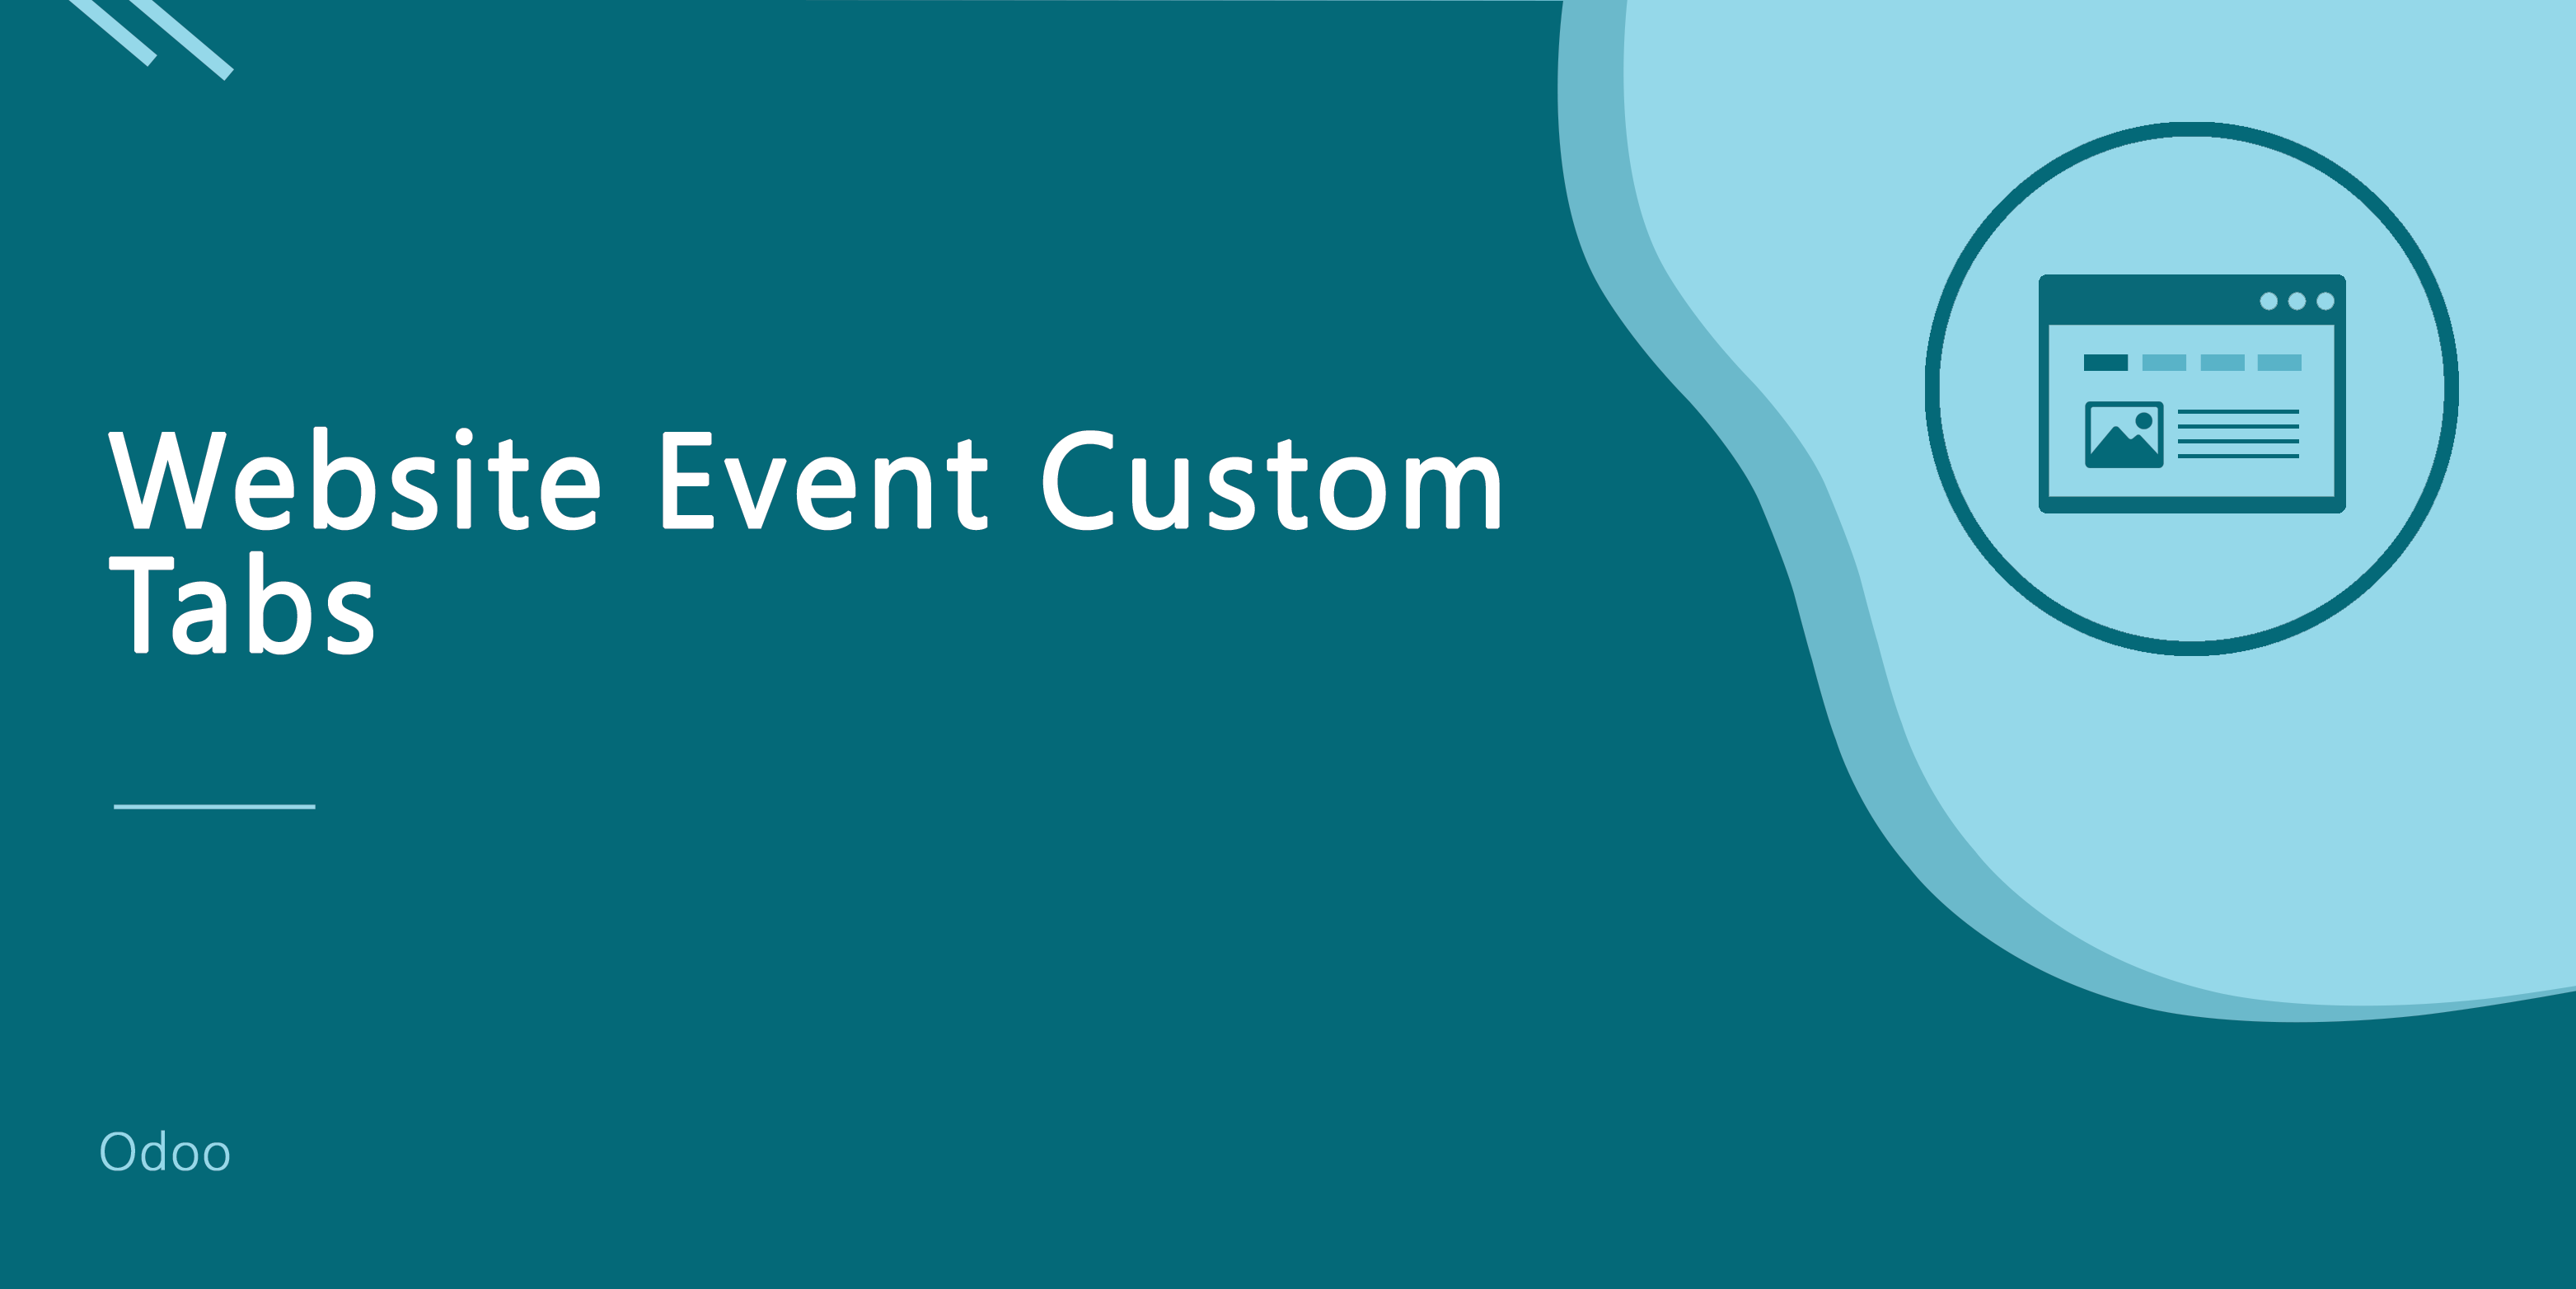 Website Event Custom Tab